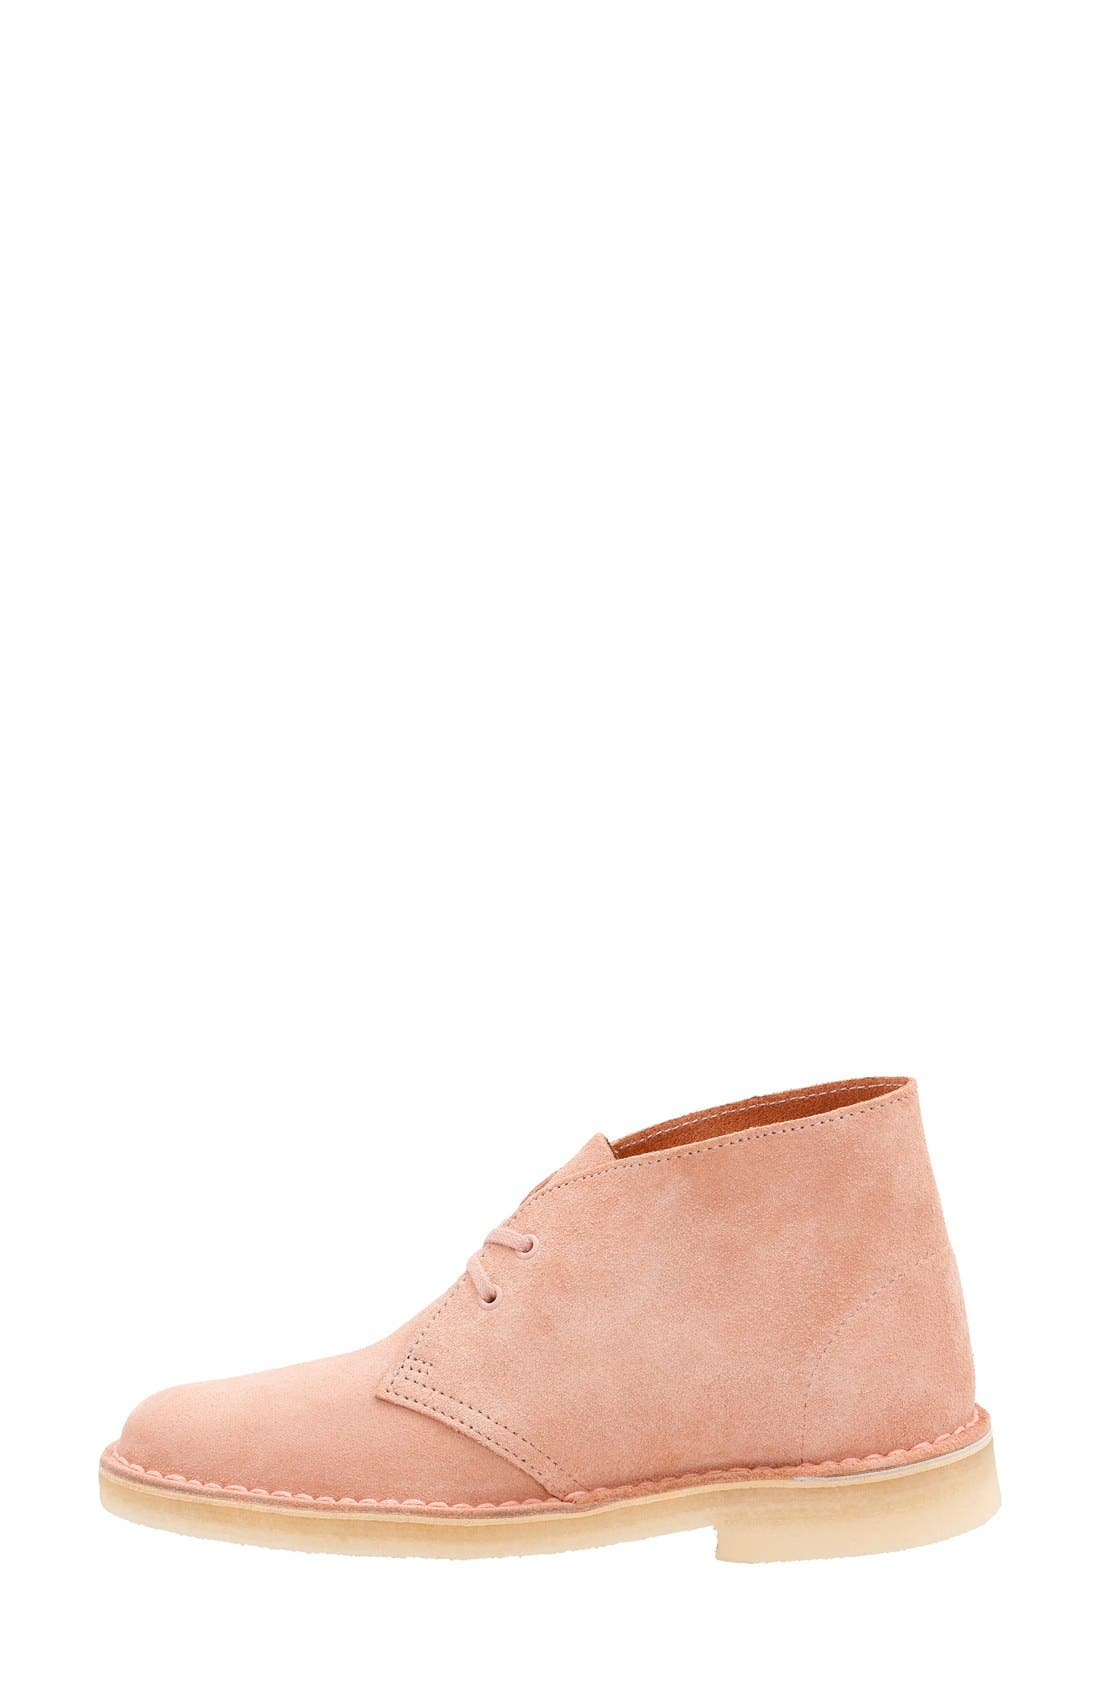 'Desert' ChukkaBoot,                             Alternate thumbnail 2, color,                             Dusty Pink Suede